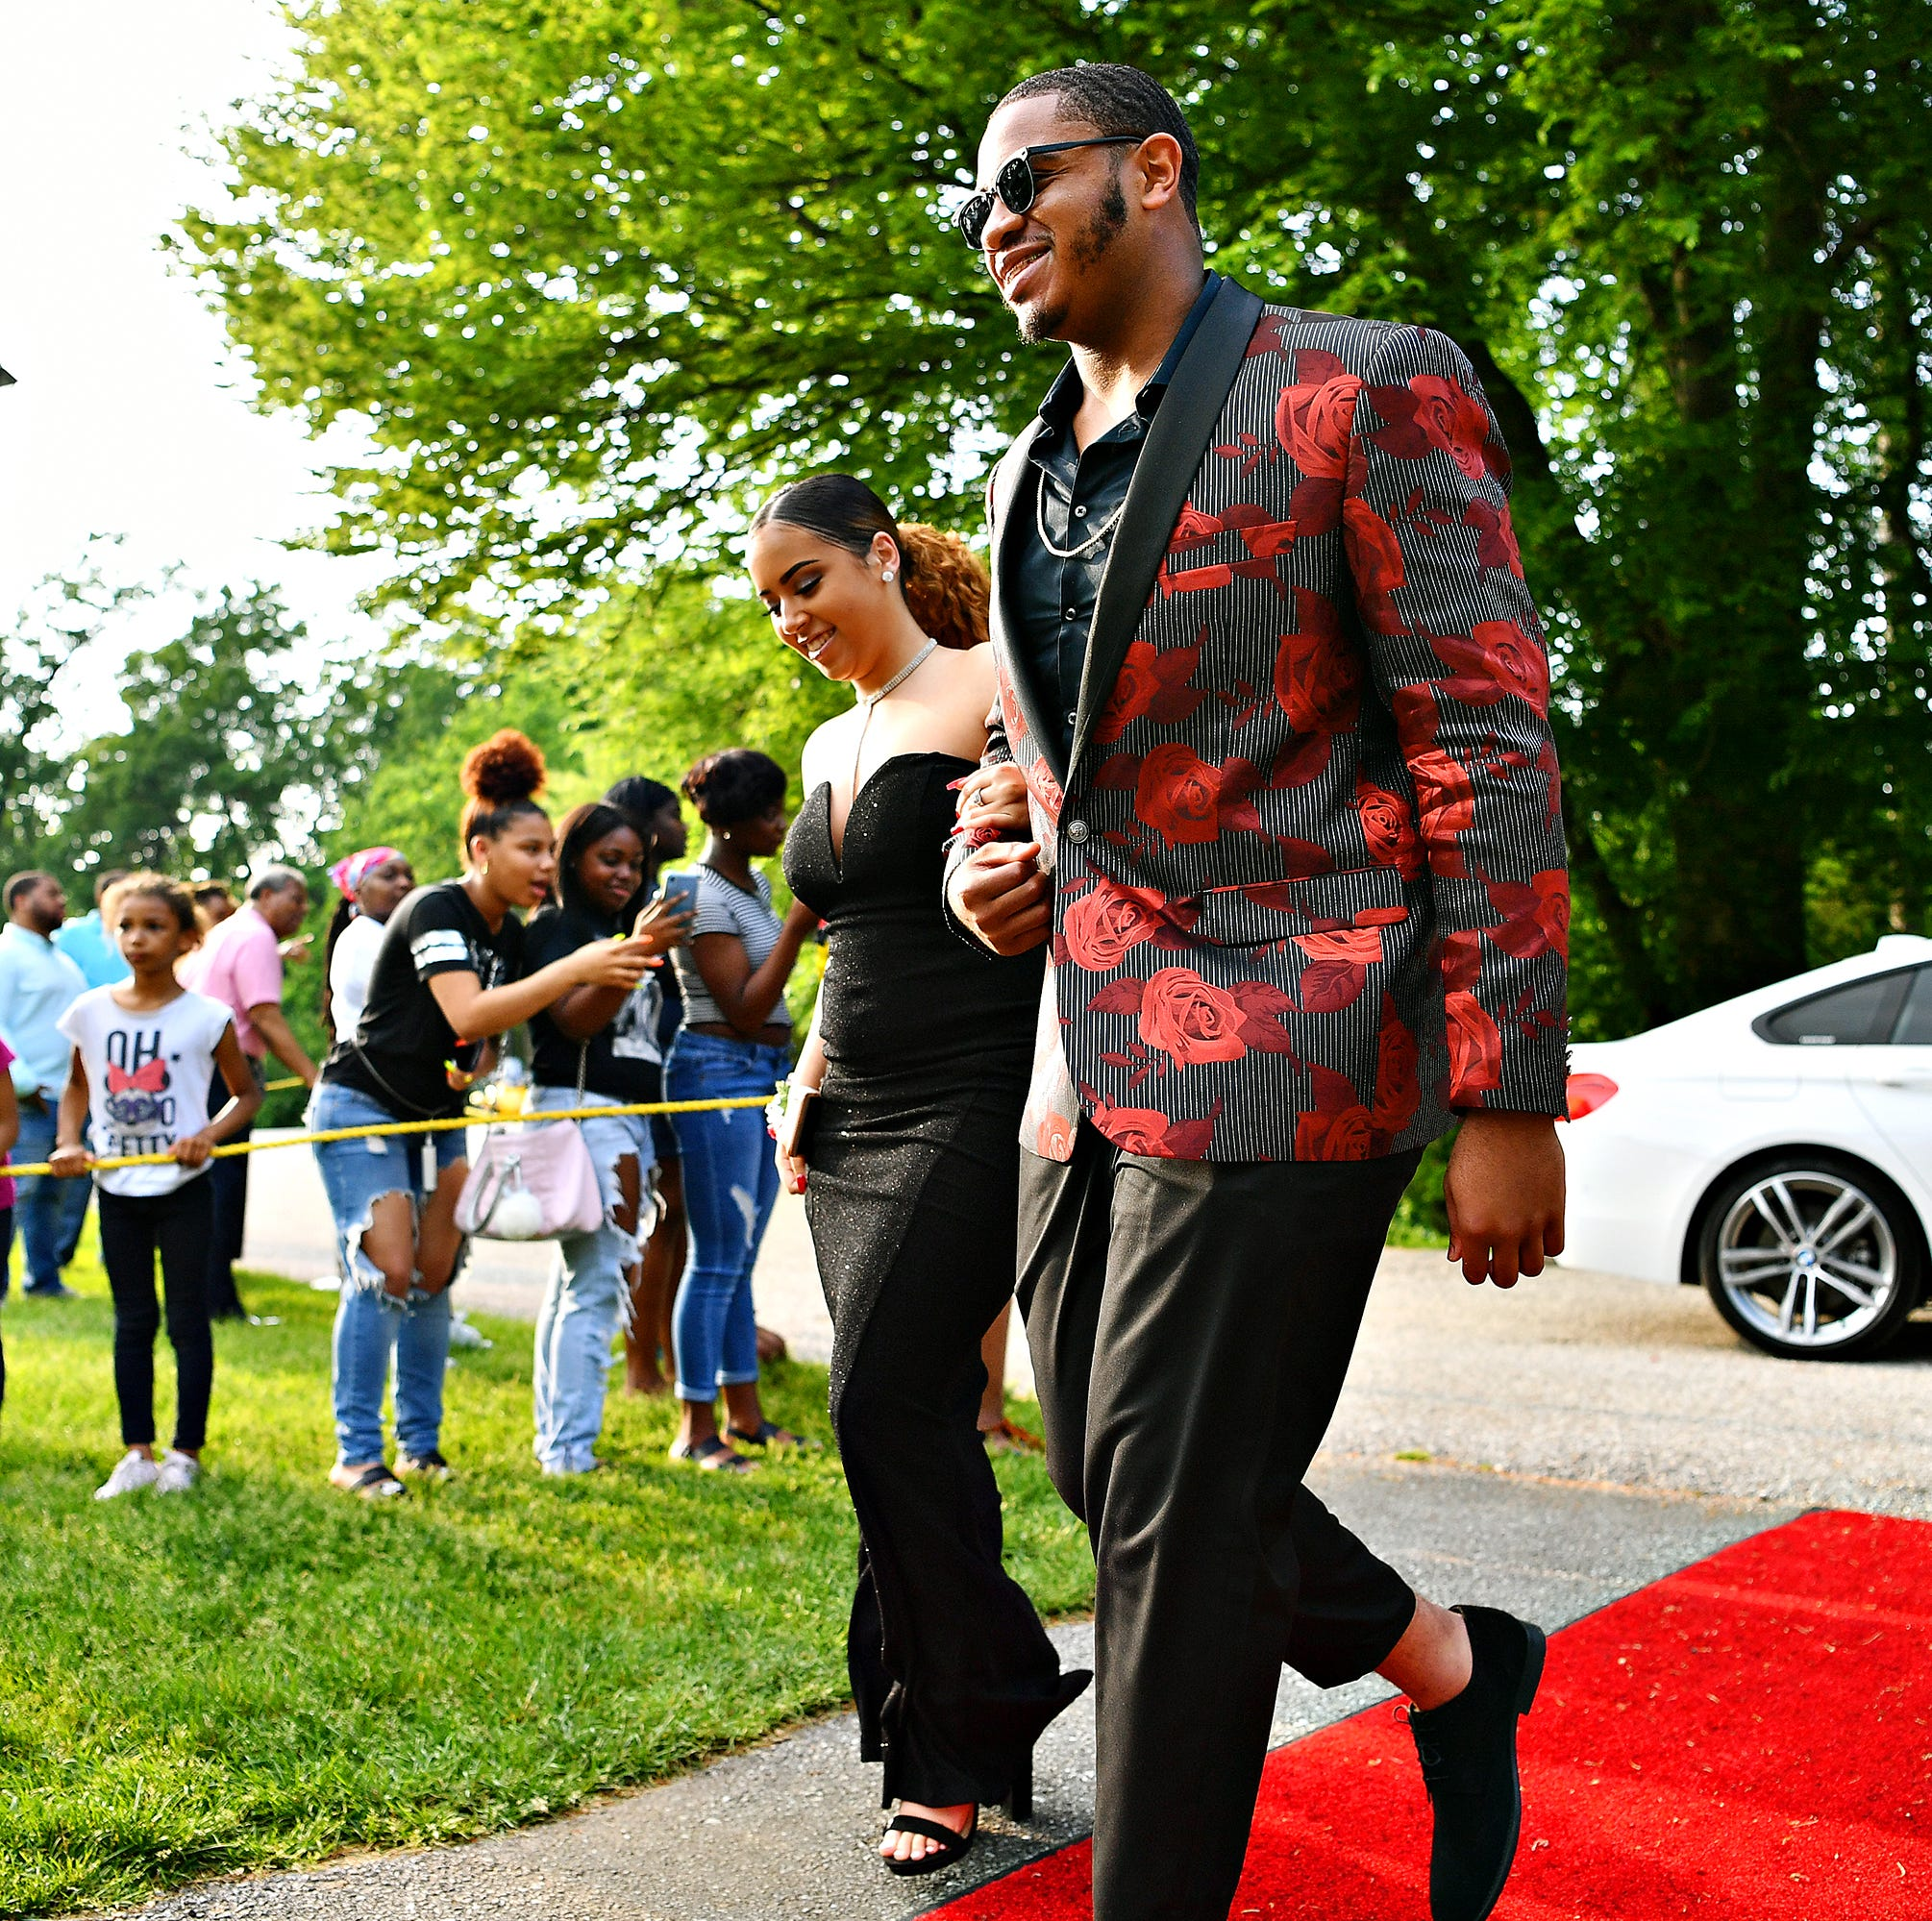 Students and their guests arrive for the William Penn Senior High School Prom at Box Hill Mansion in Spring Garden Township, Saturday, May 18, 2019. Dawn J. Sagert photo